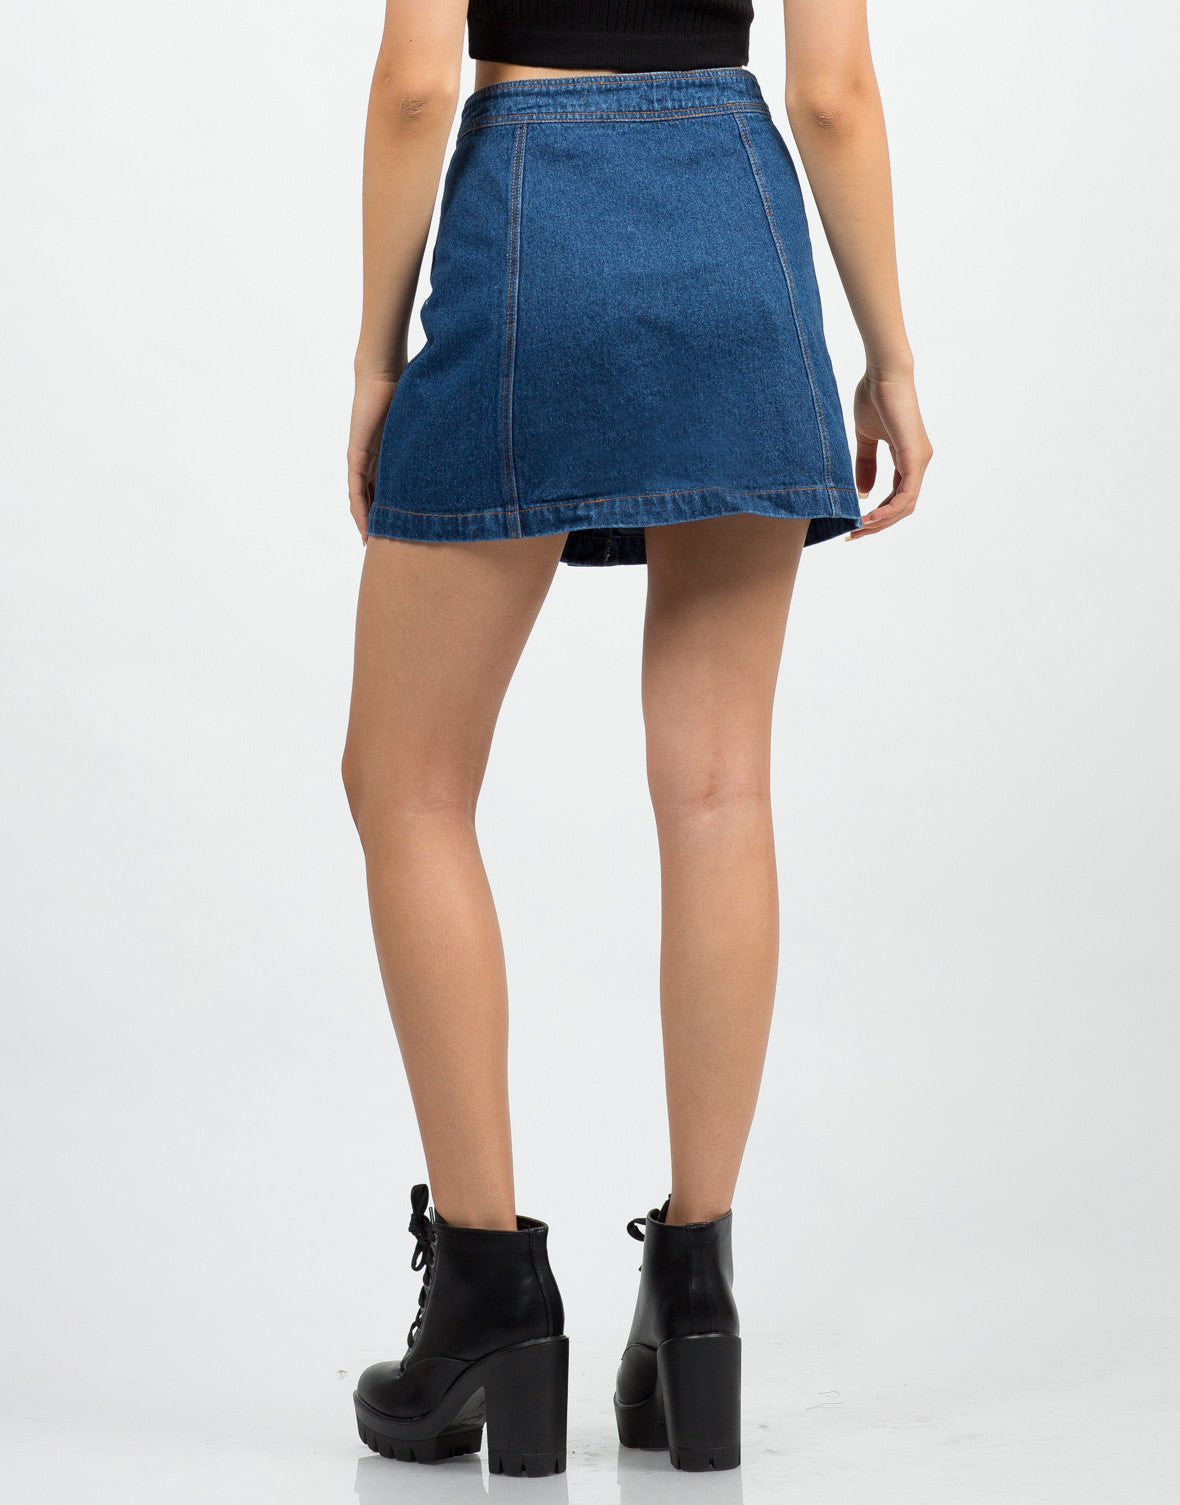 Back View of Flare Denim Skirt